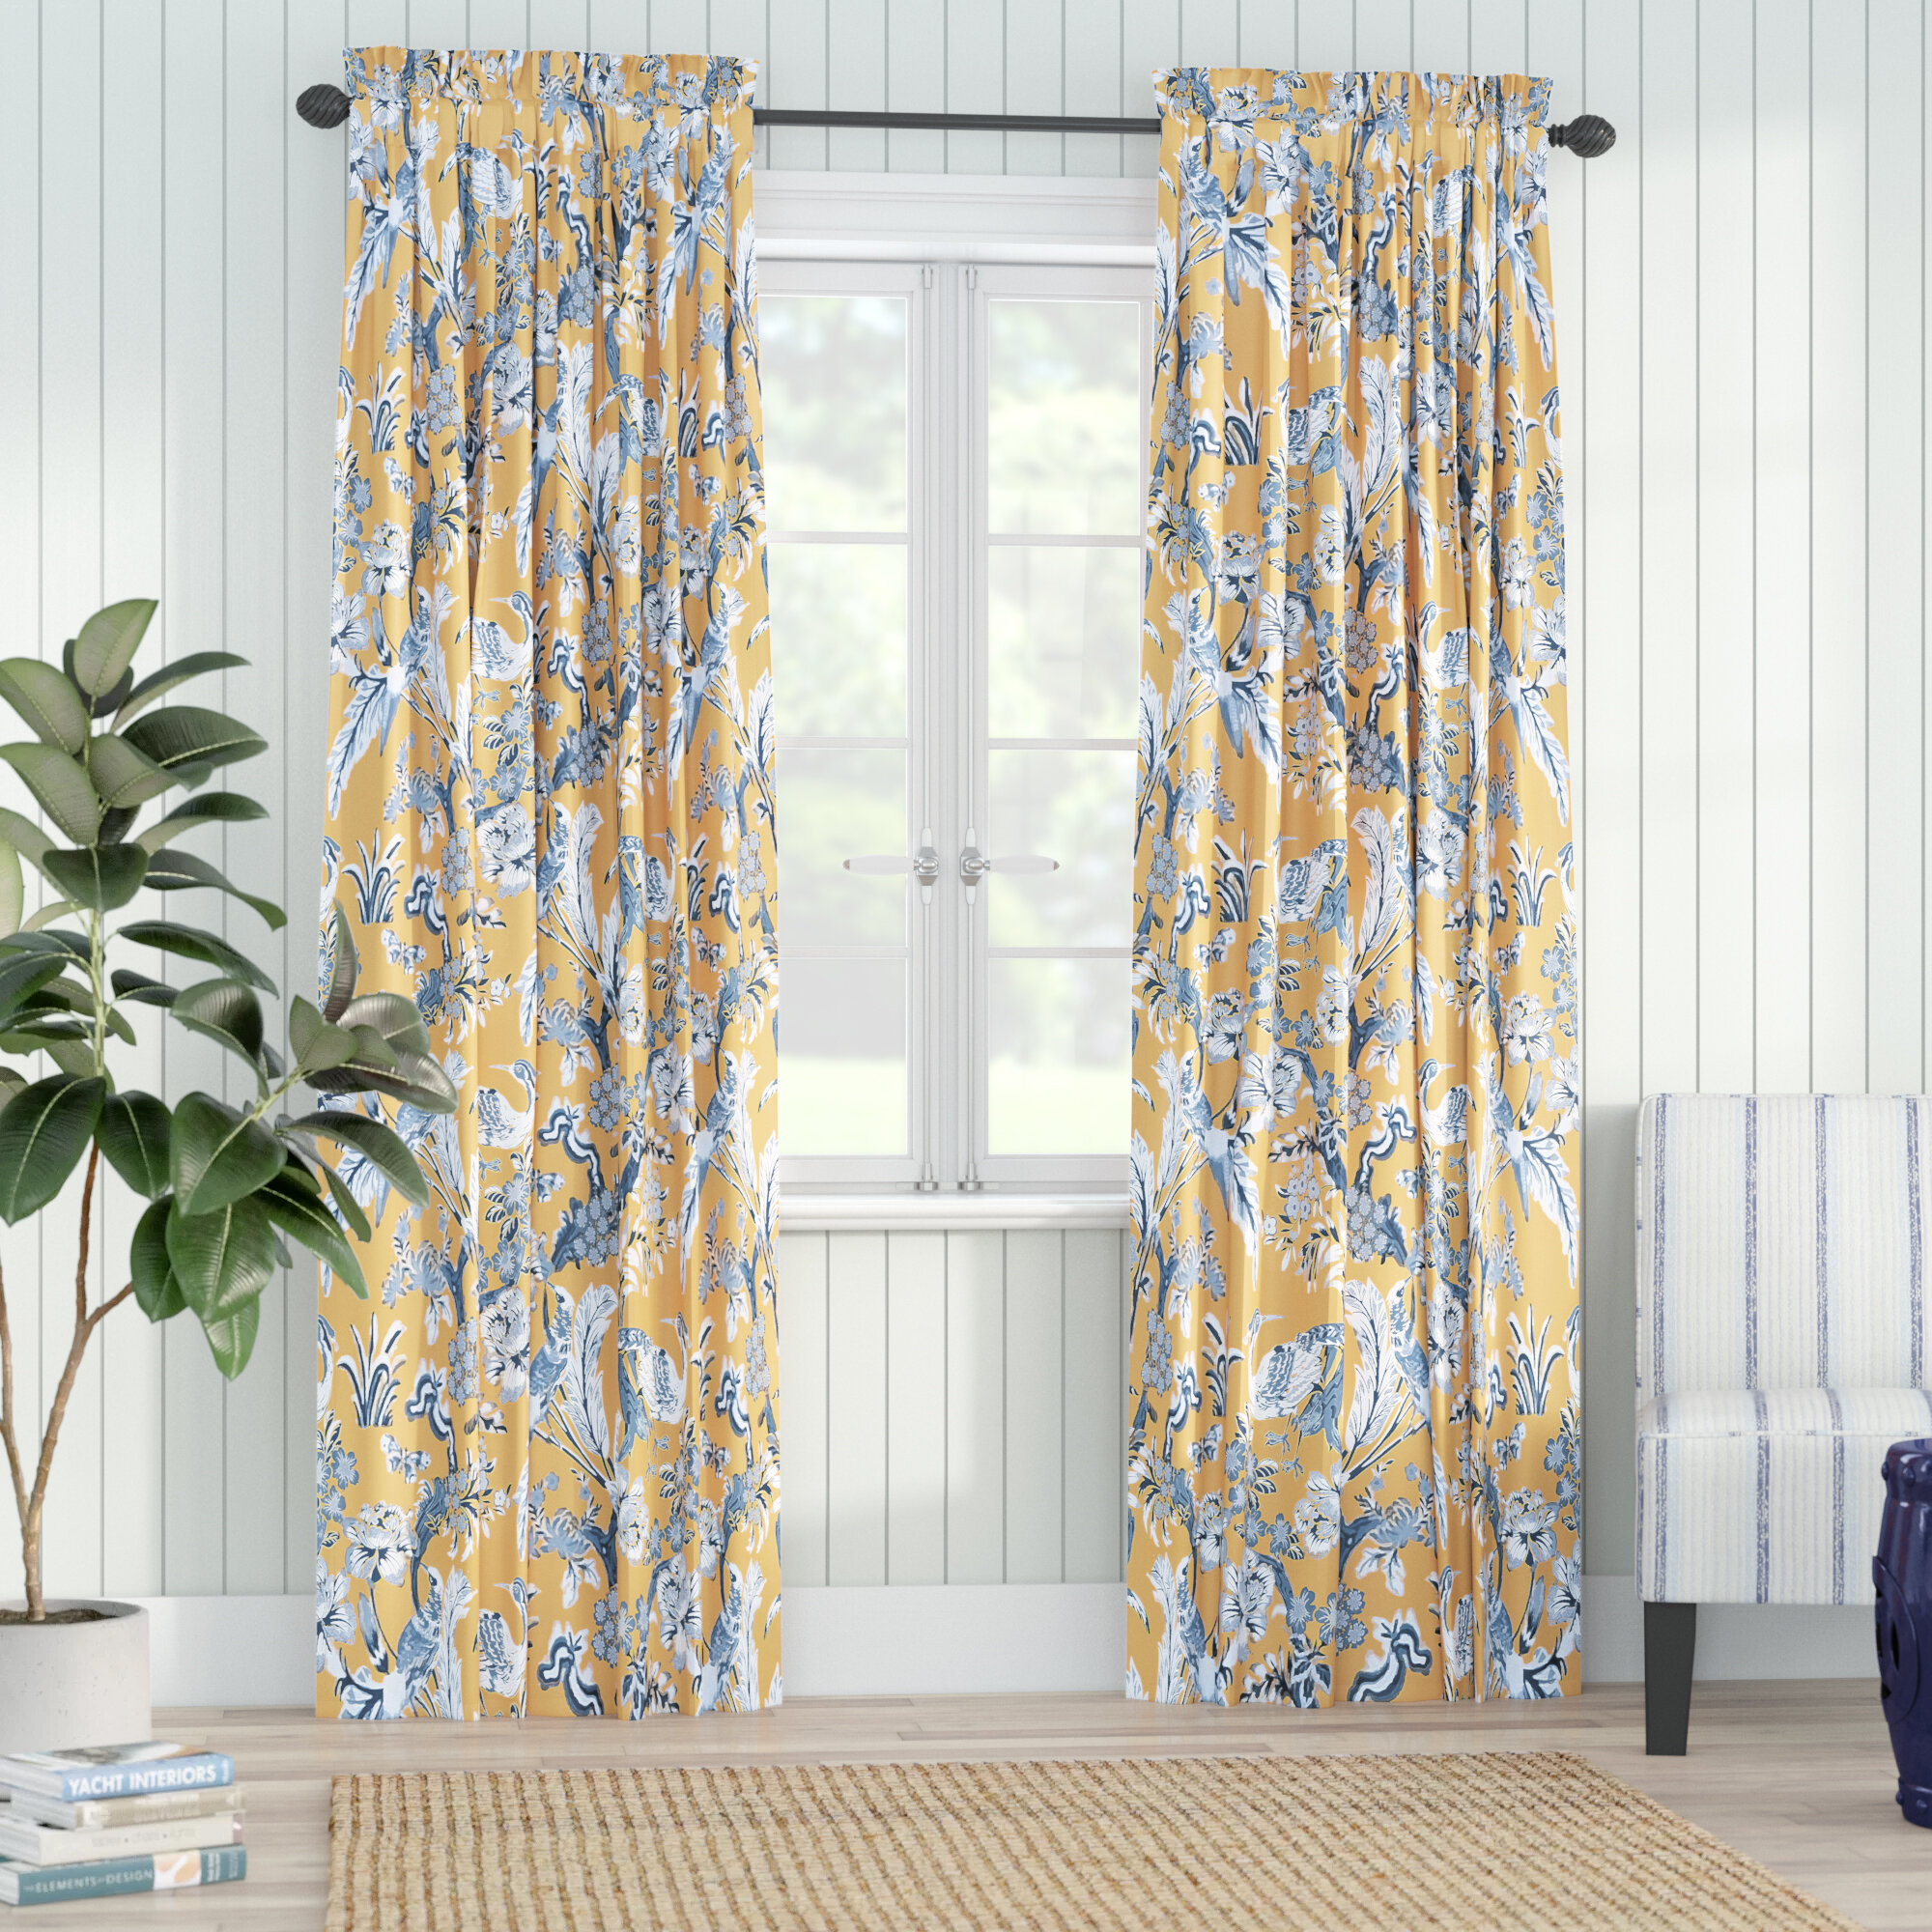 Wayfair Living Room Curtains Drapes You Ll Love In 2021